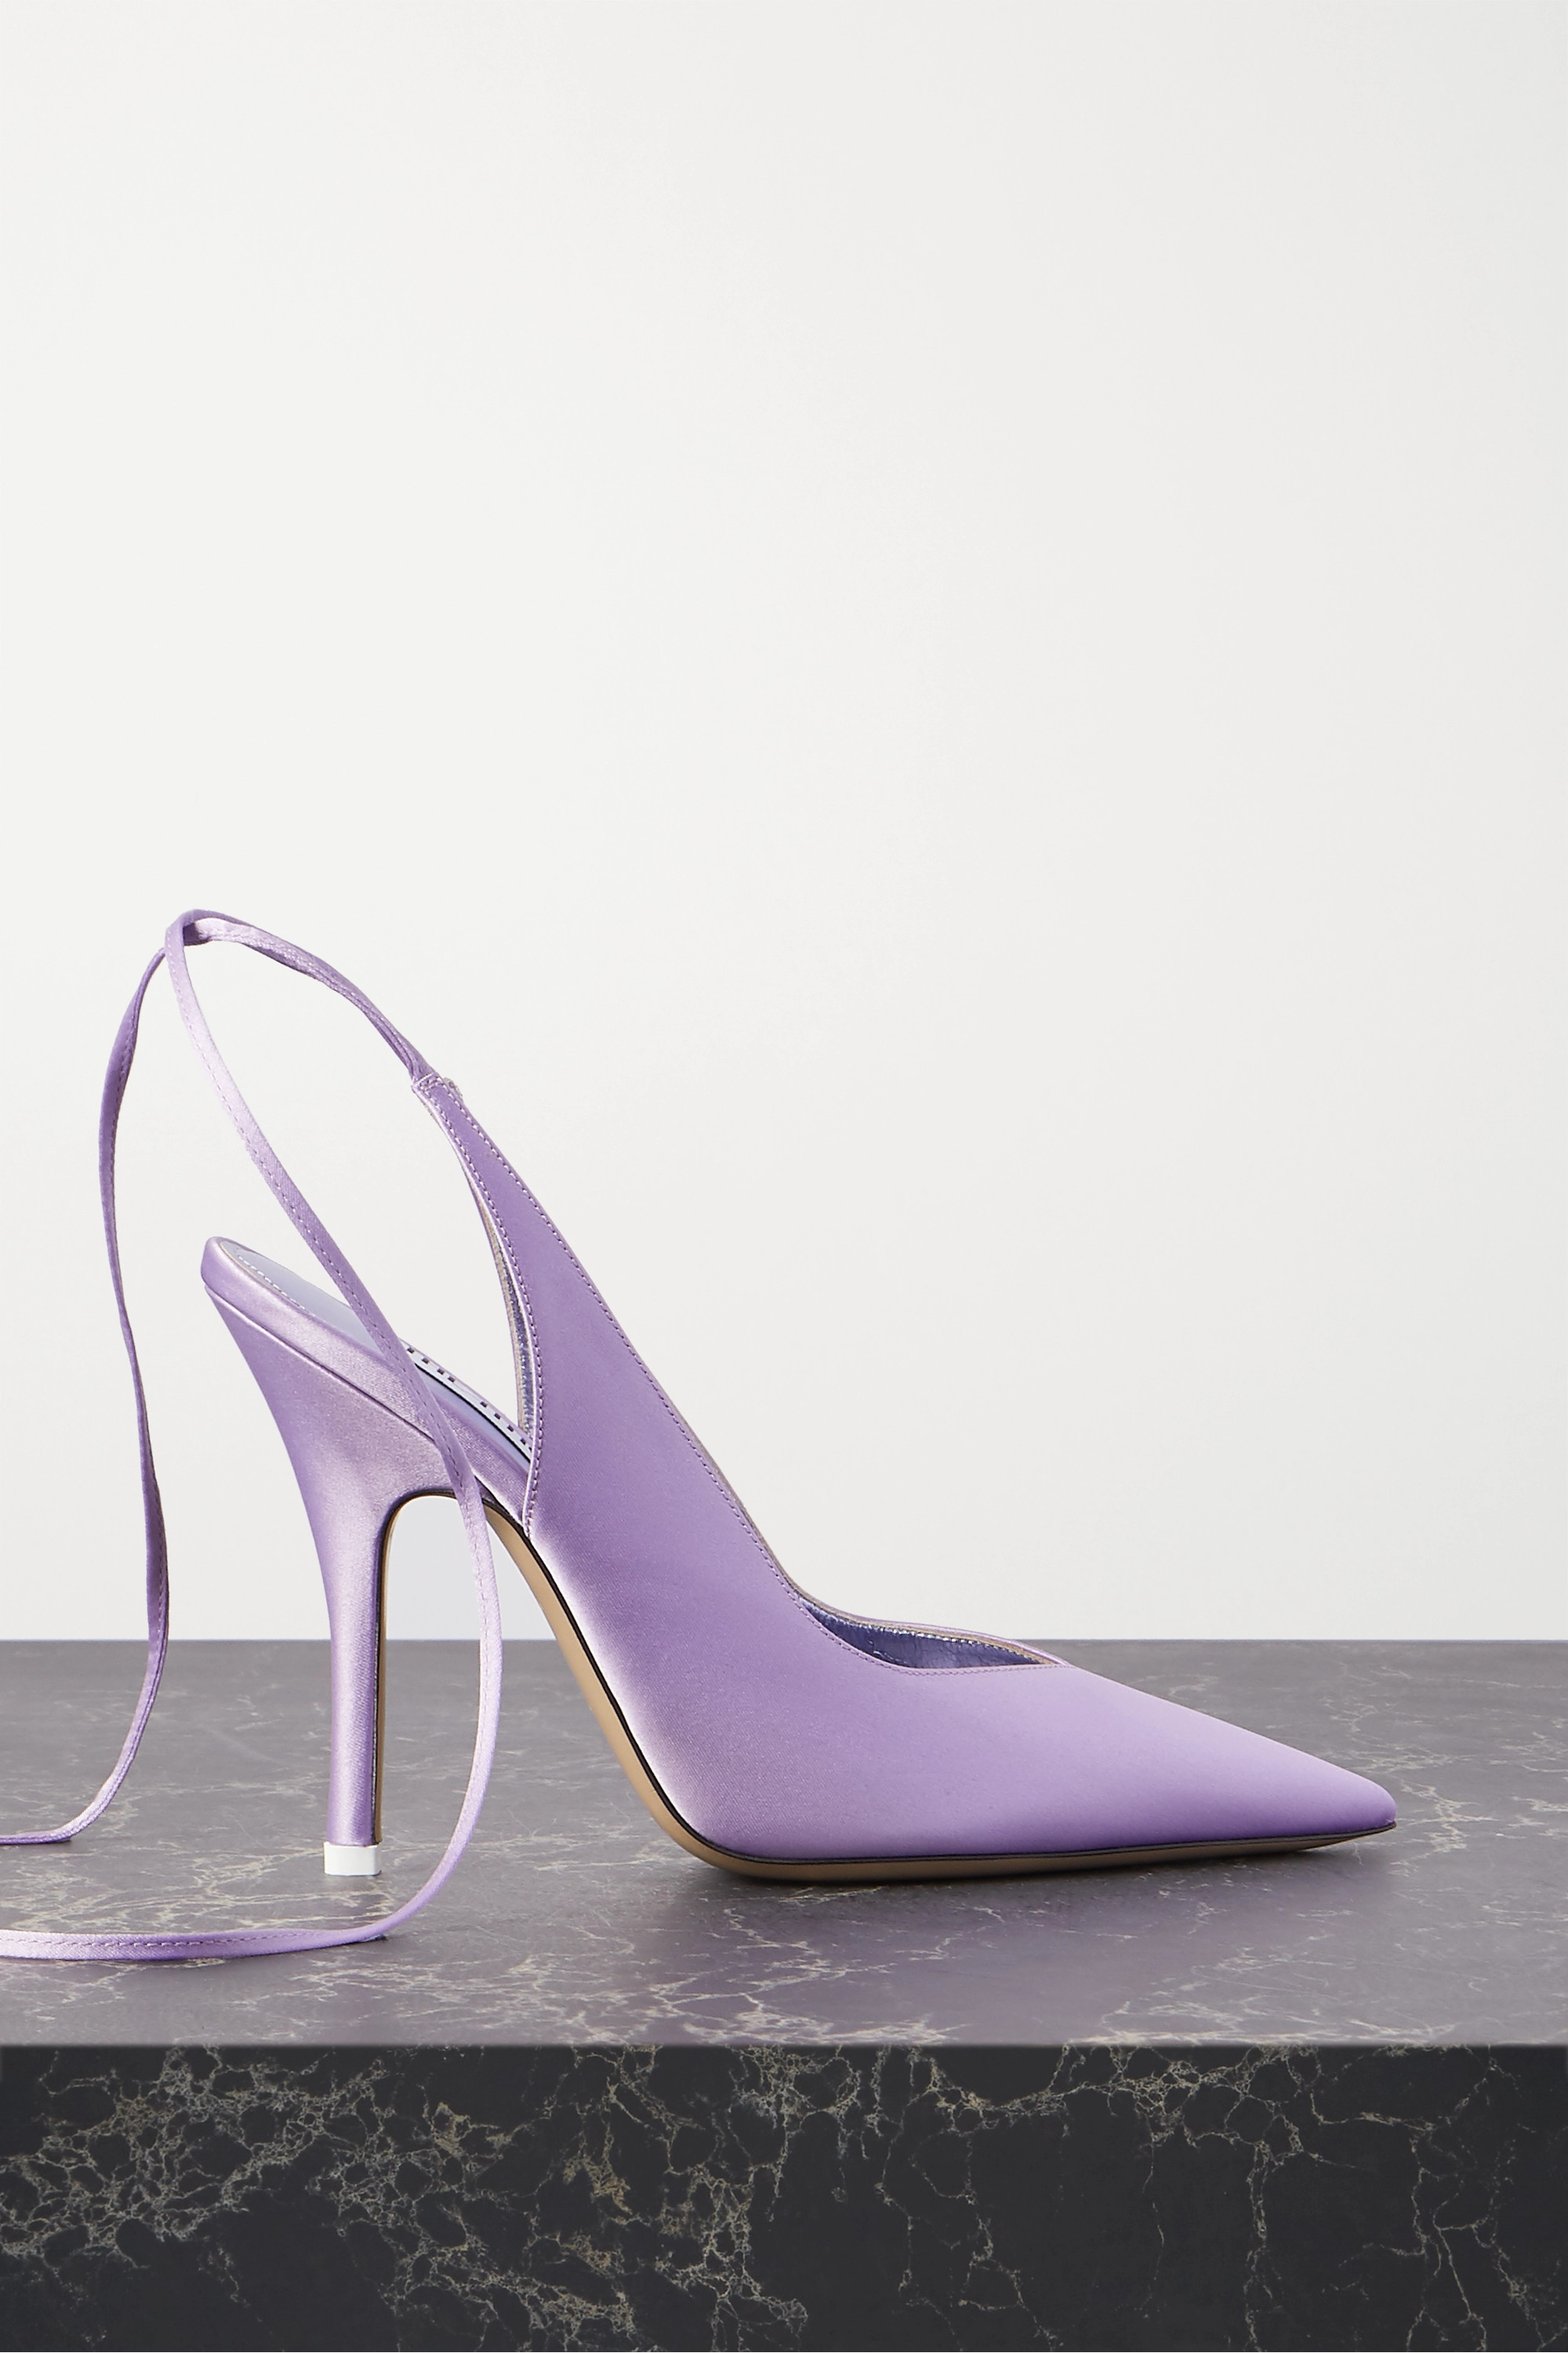 The Attico Venus satin pumps